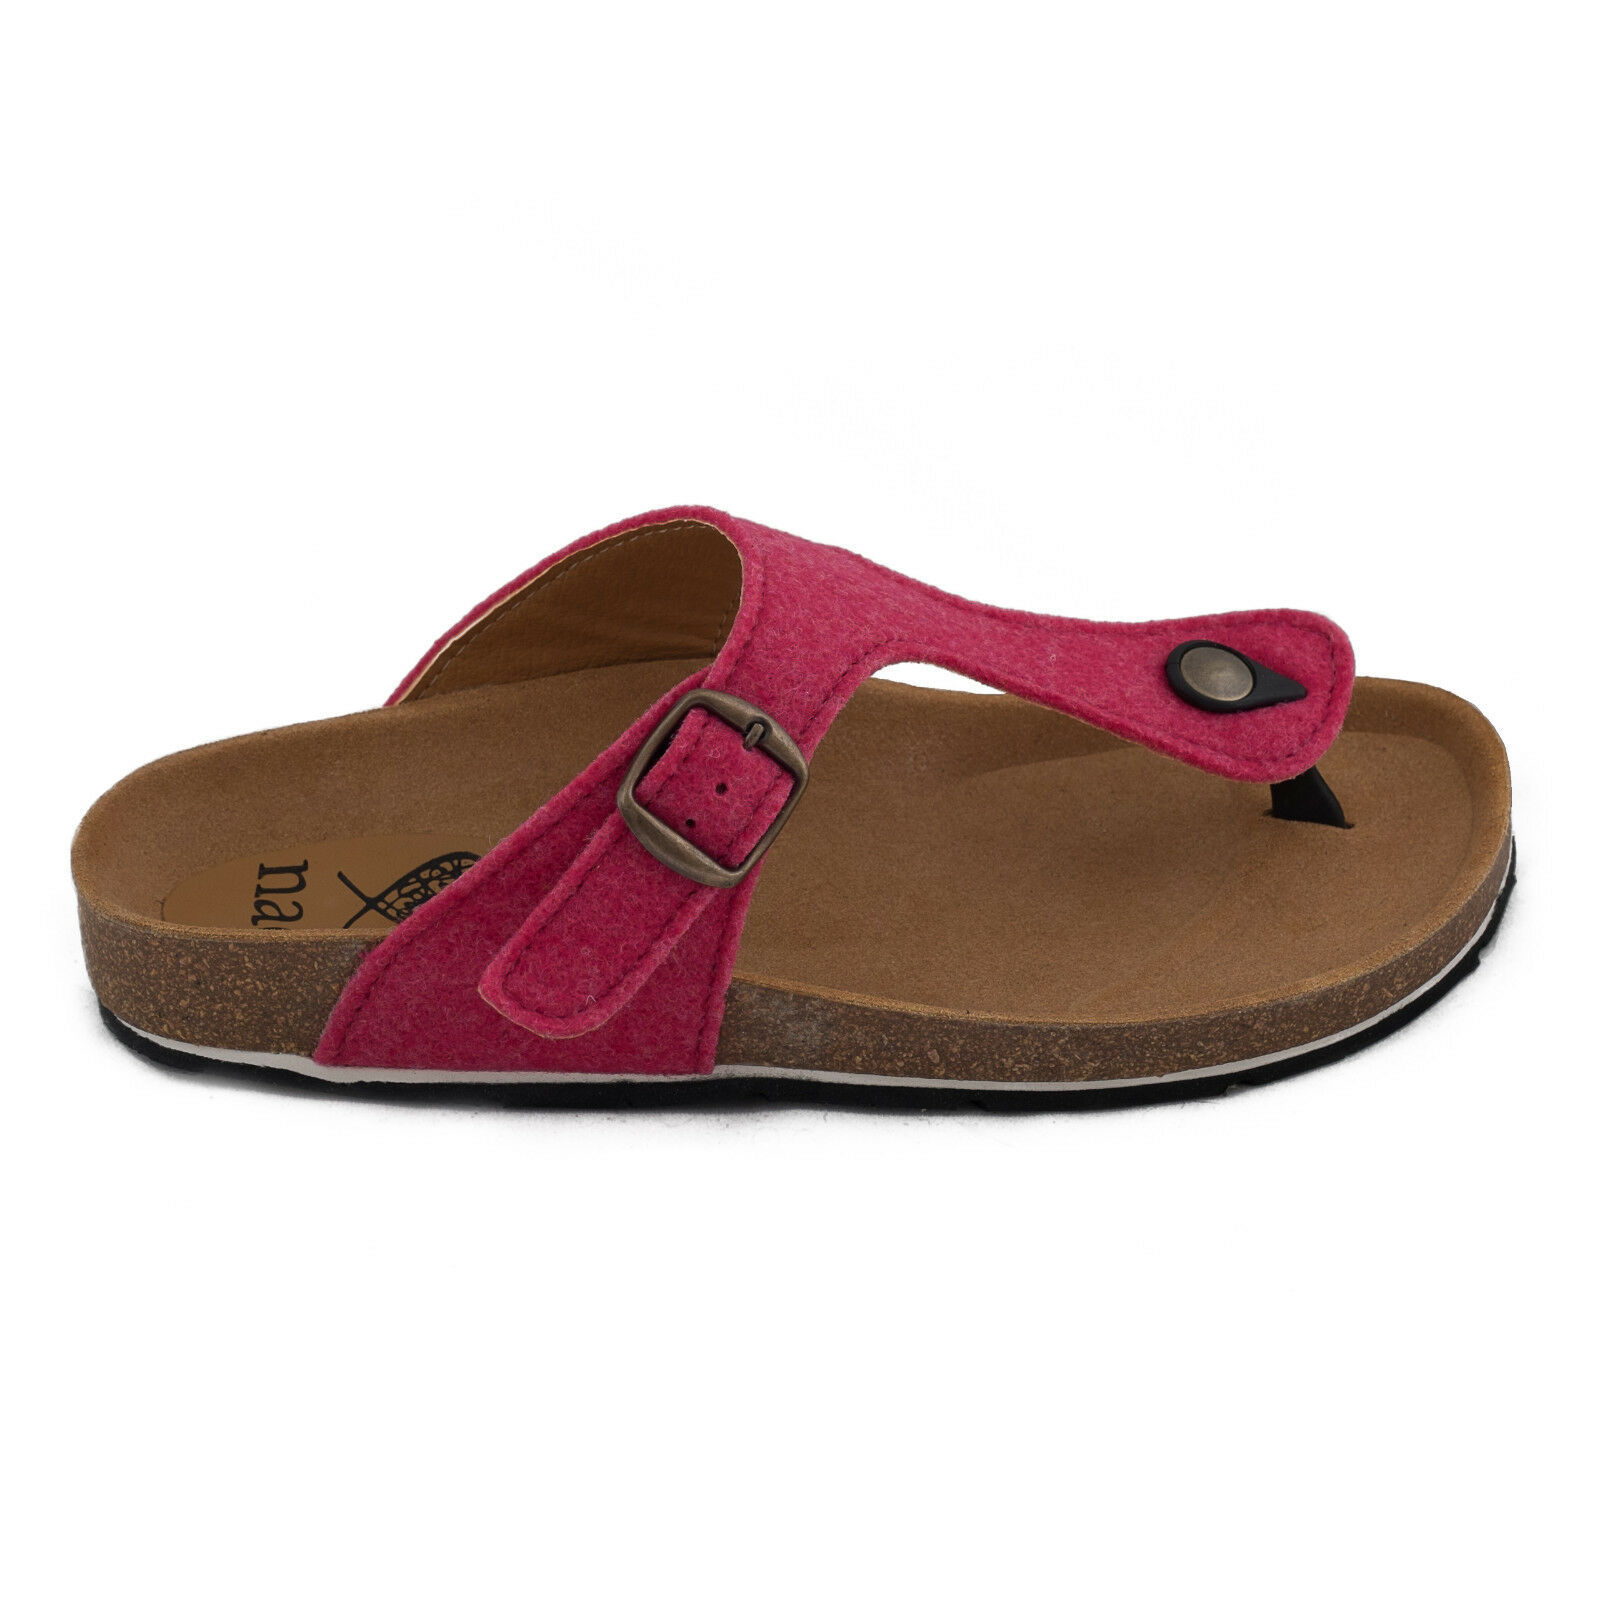 Primary image for Flip-Flop Tongue Sandal Vegan recycled bottles woman Flat NAE Casual Beach Soft